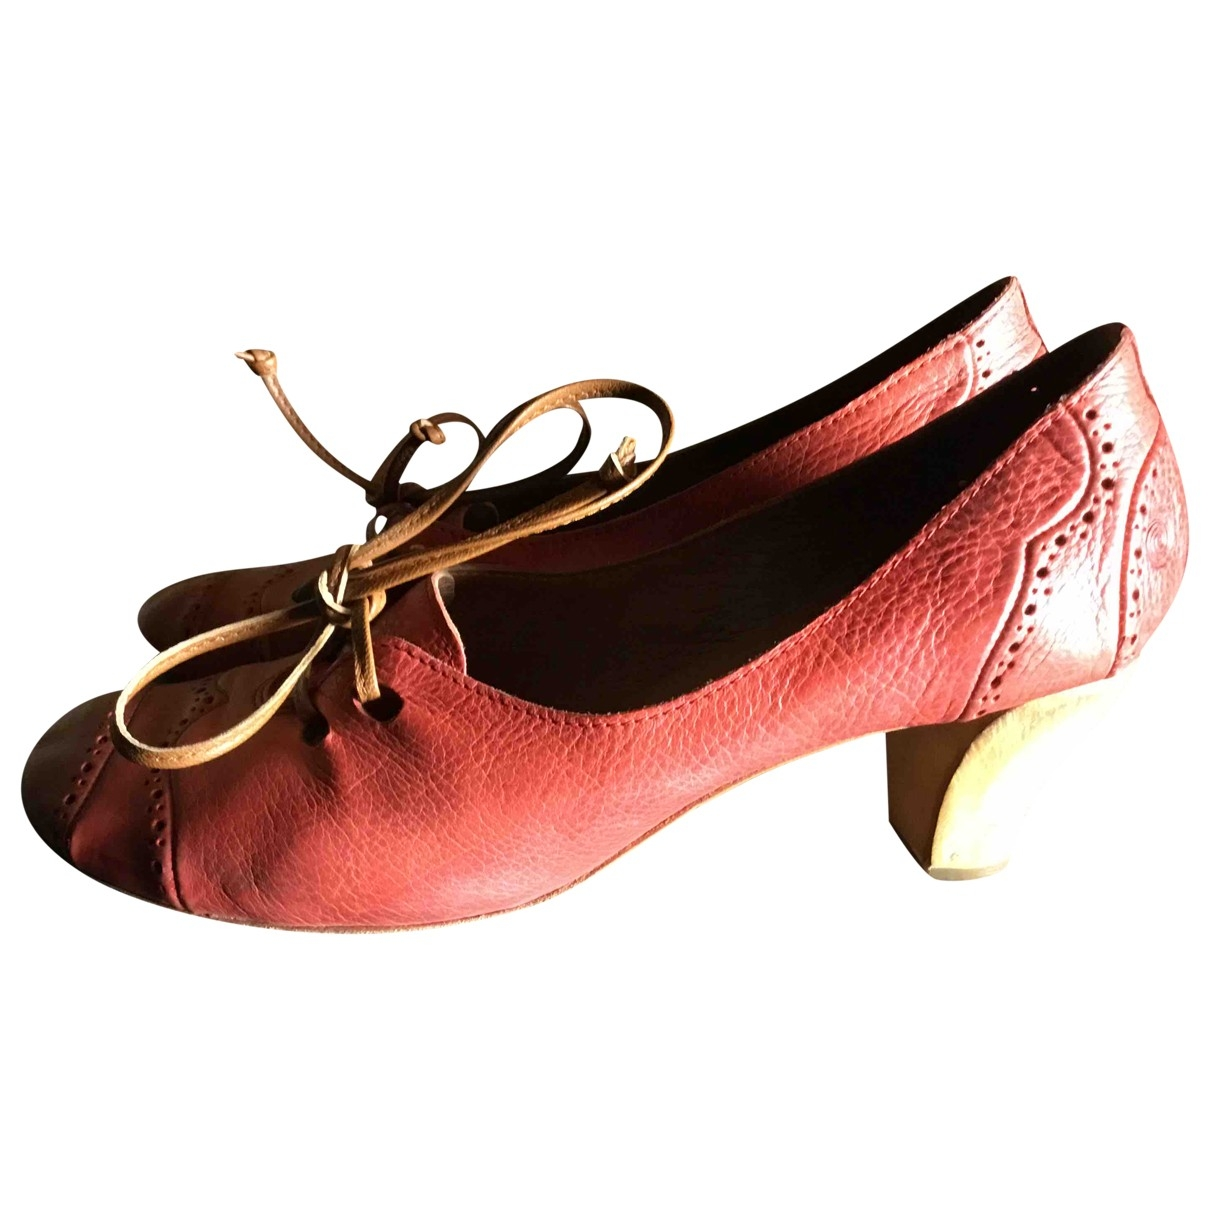 Mars??ll \N Red Leather Flats for Women 38 EU